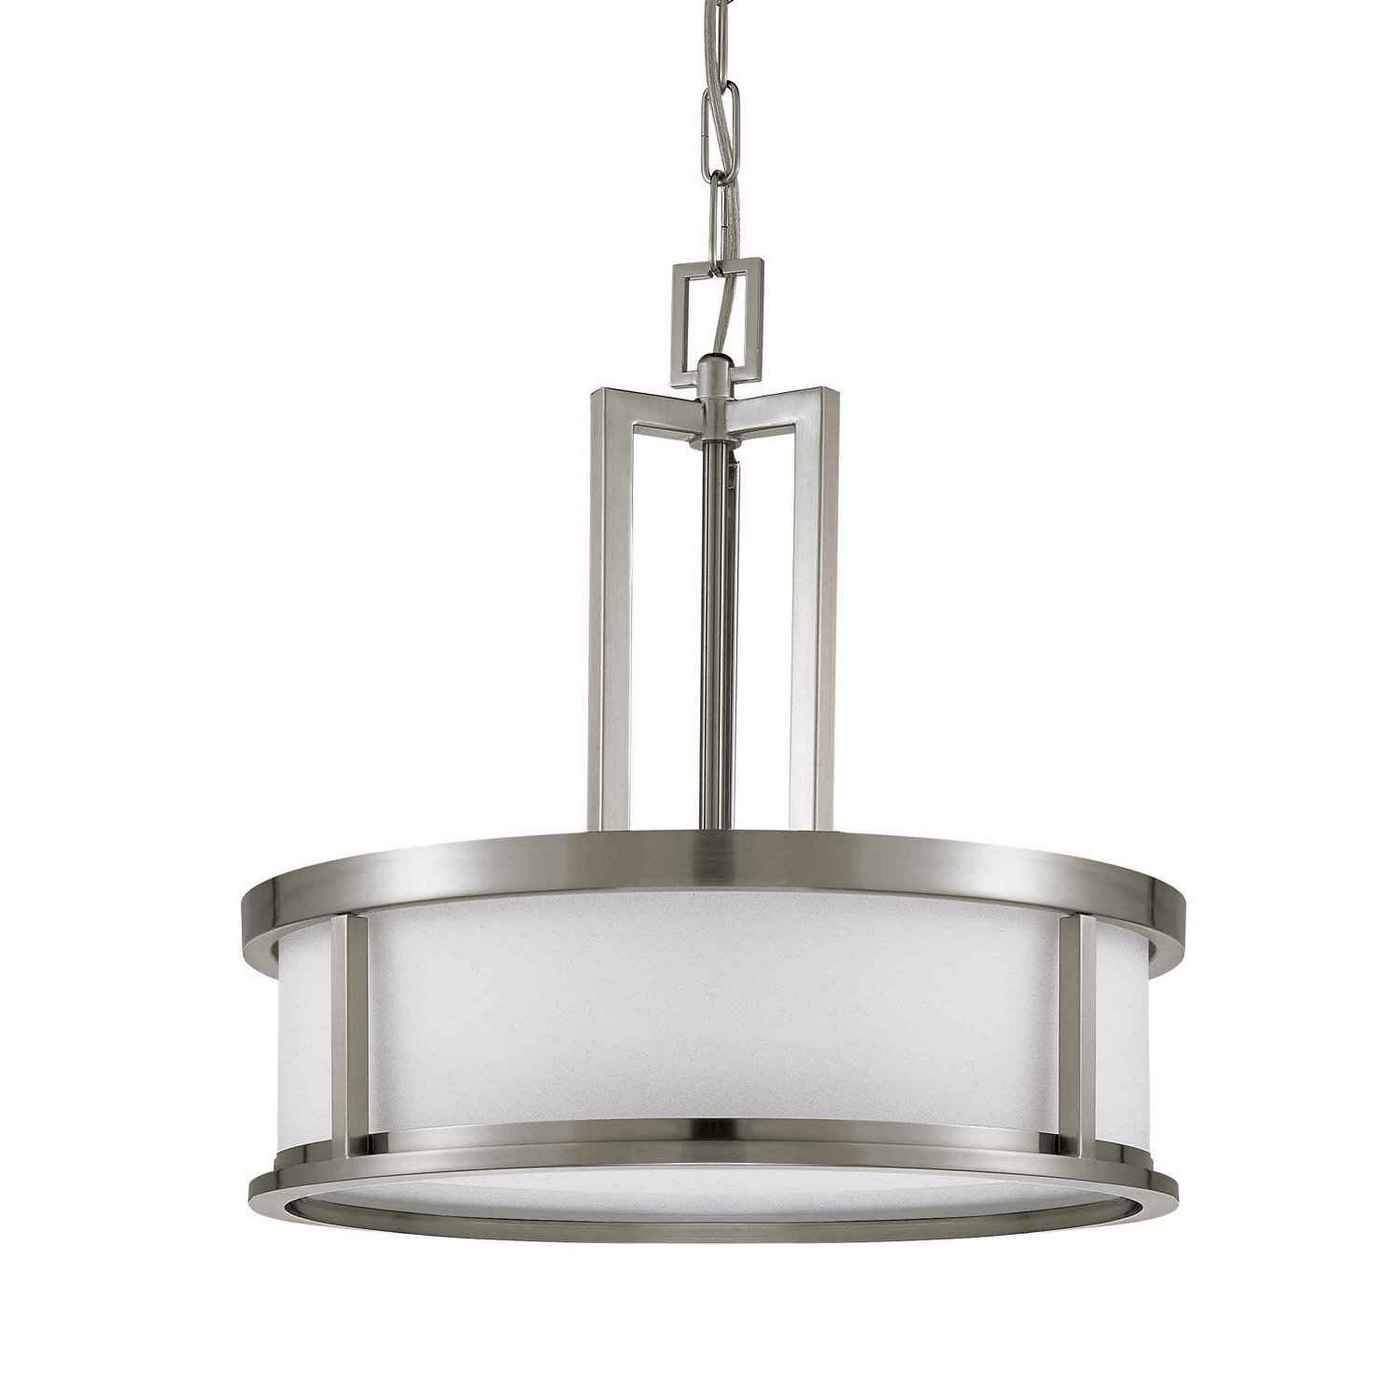 Lighting & Lamp: Glass Minimalist Contemporary Pendant Lights For in Cheap Pendant Lighting (Image 7 of 15)